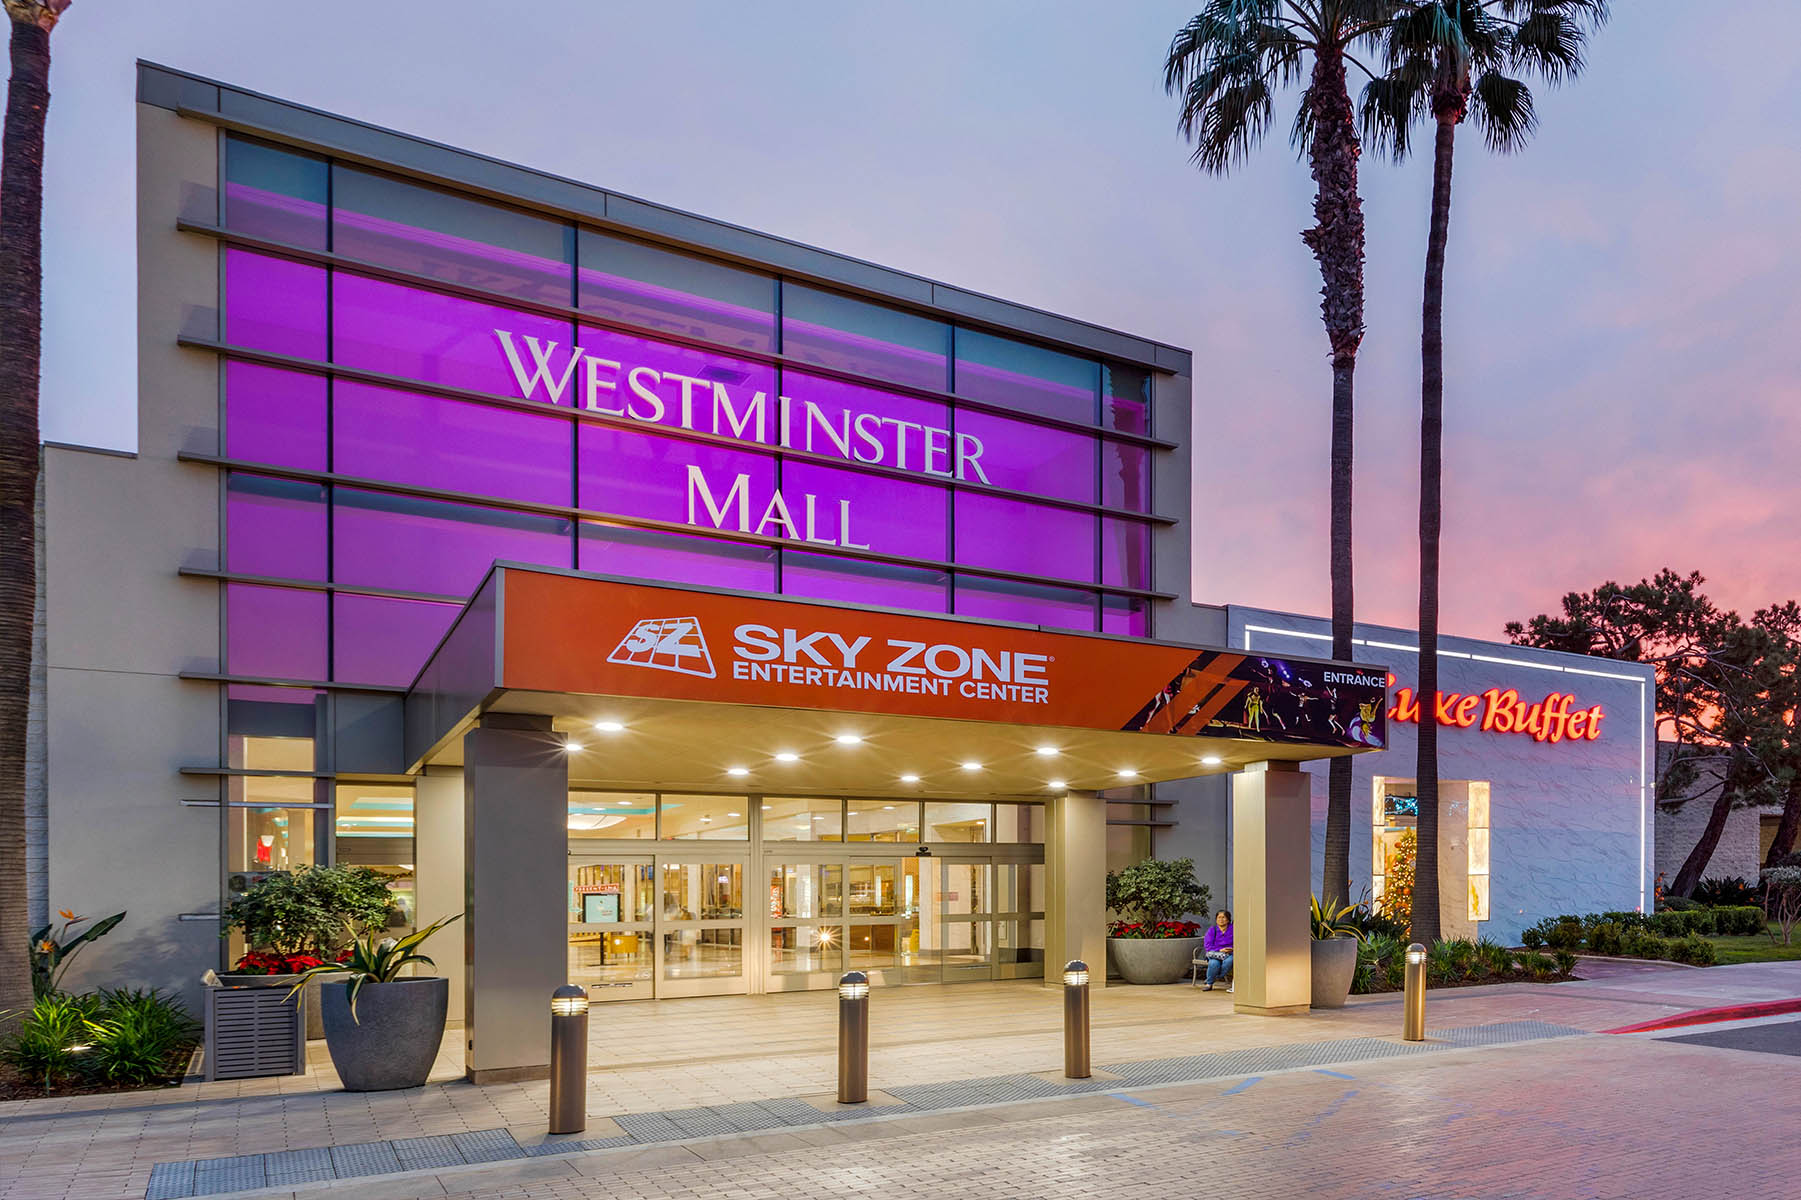 Westminster Mall Exterior at Sunset